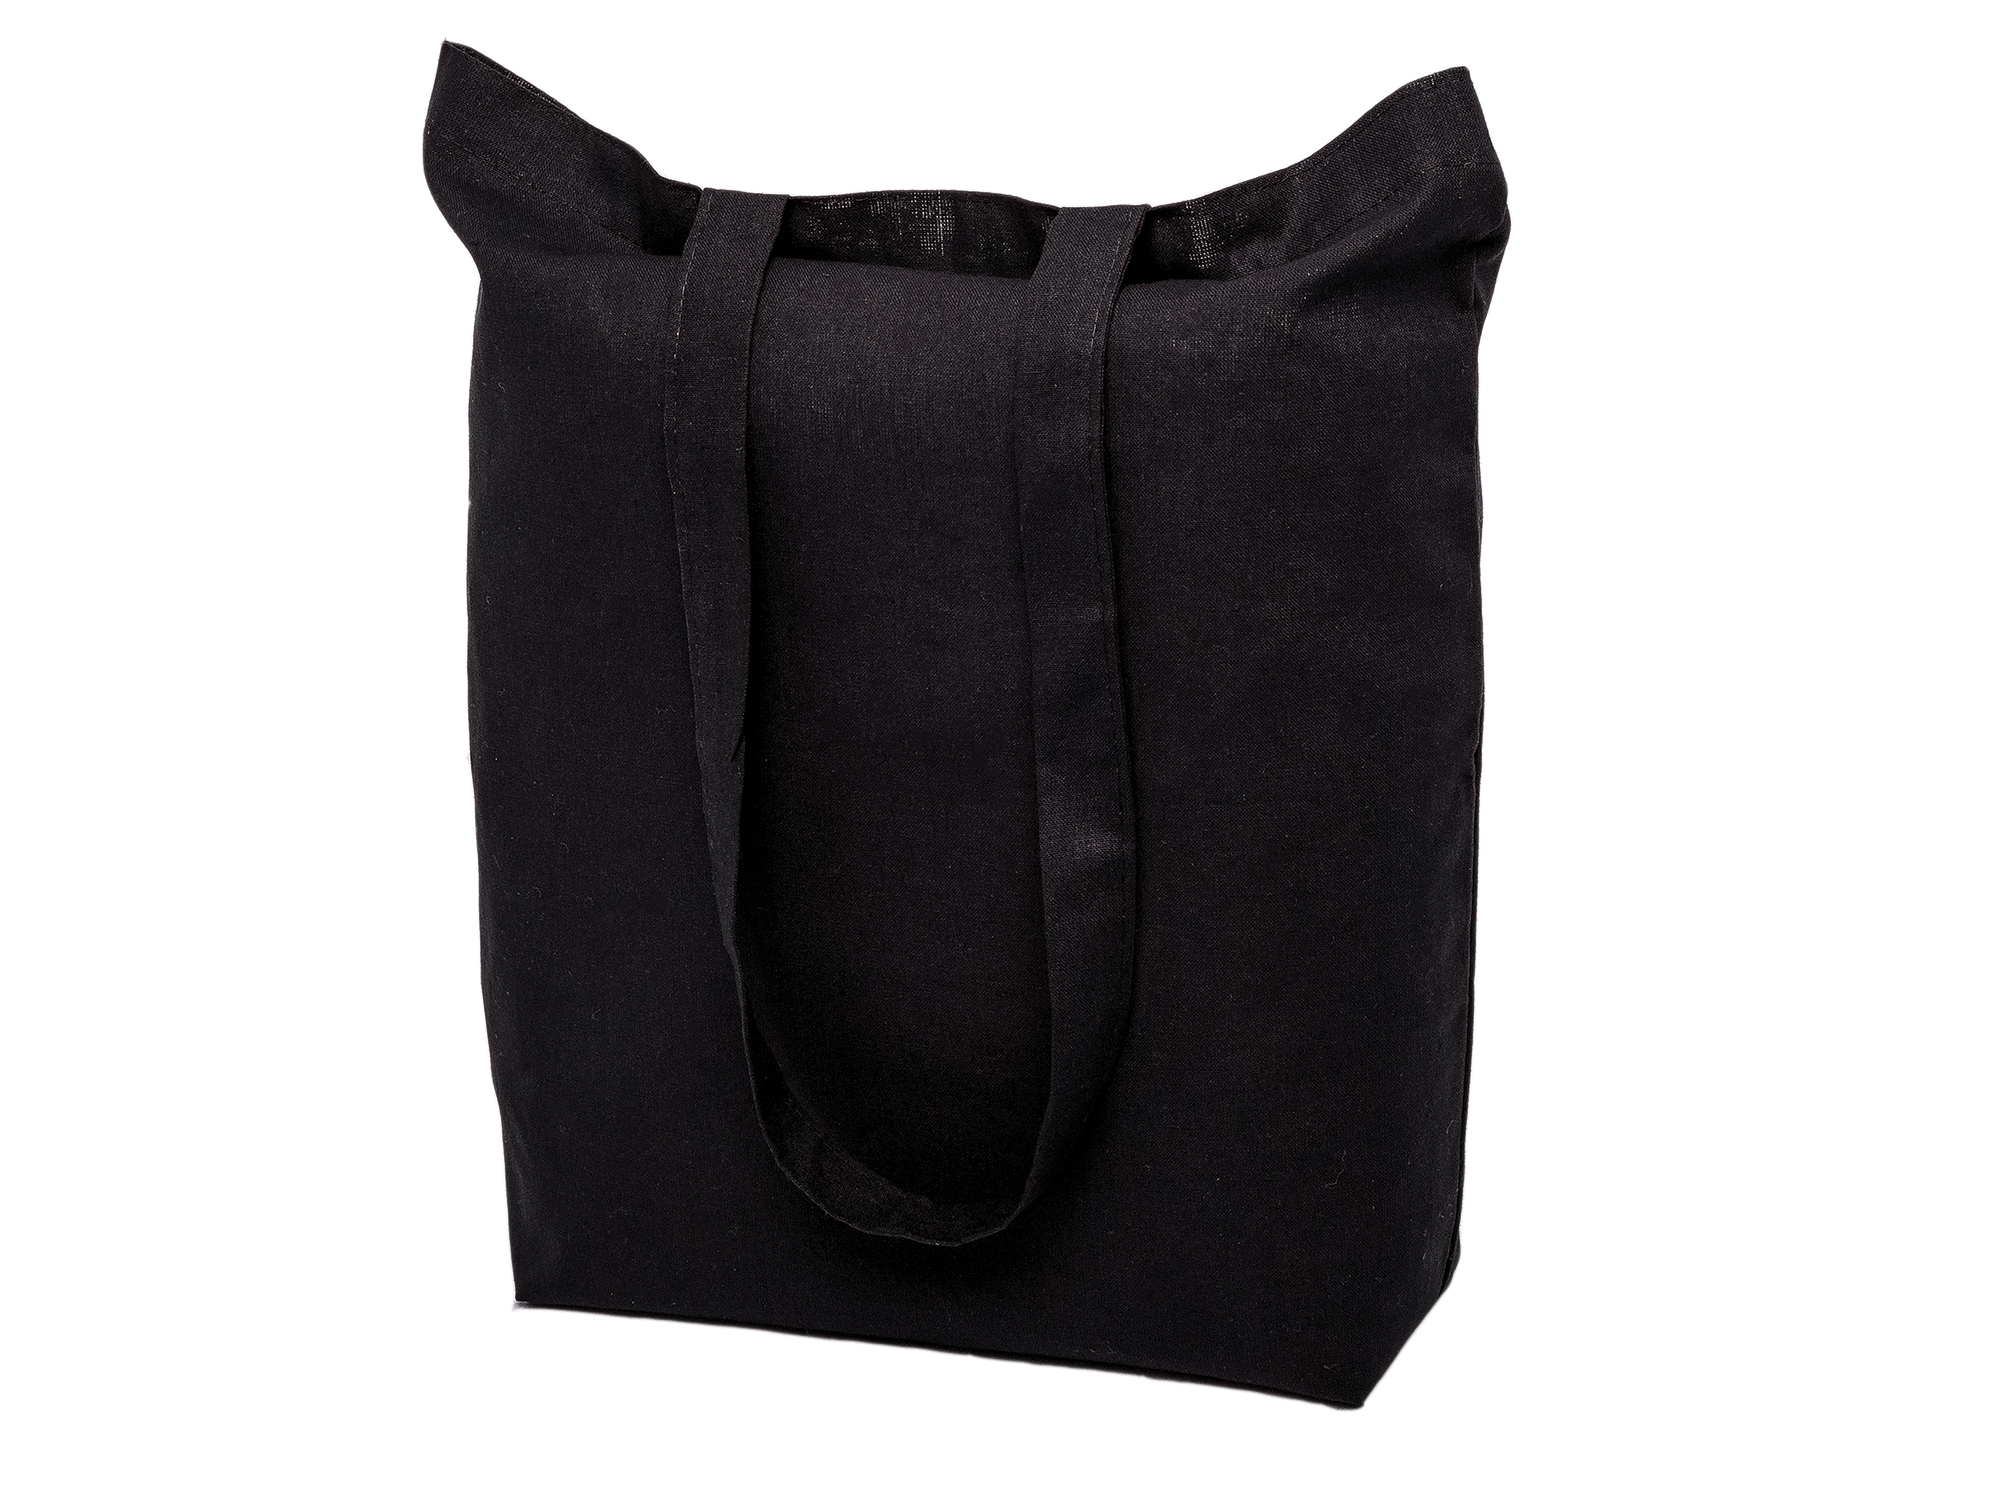 Item COTTON BAG for shopping BLACK X POLAND